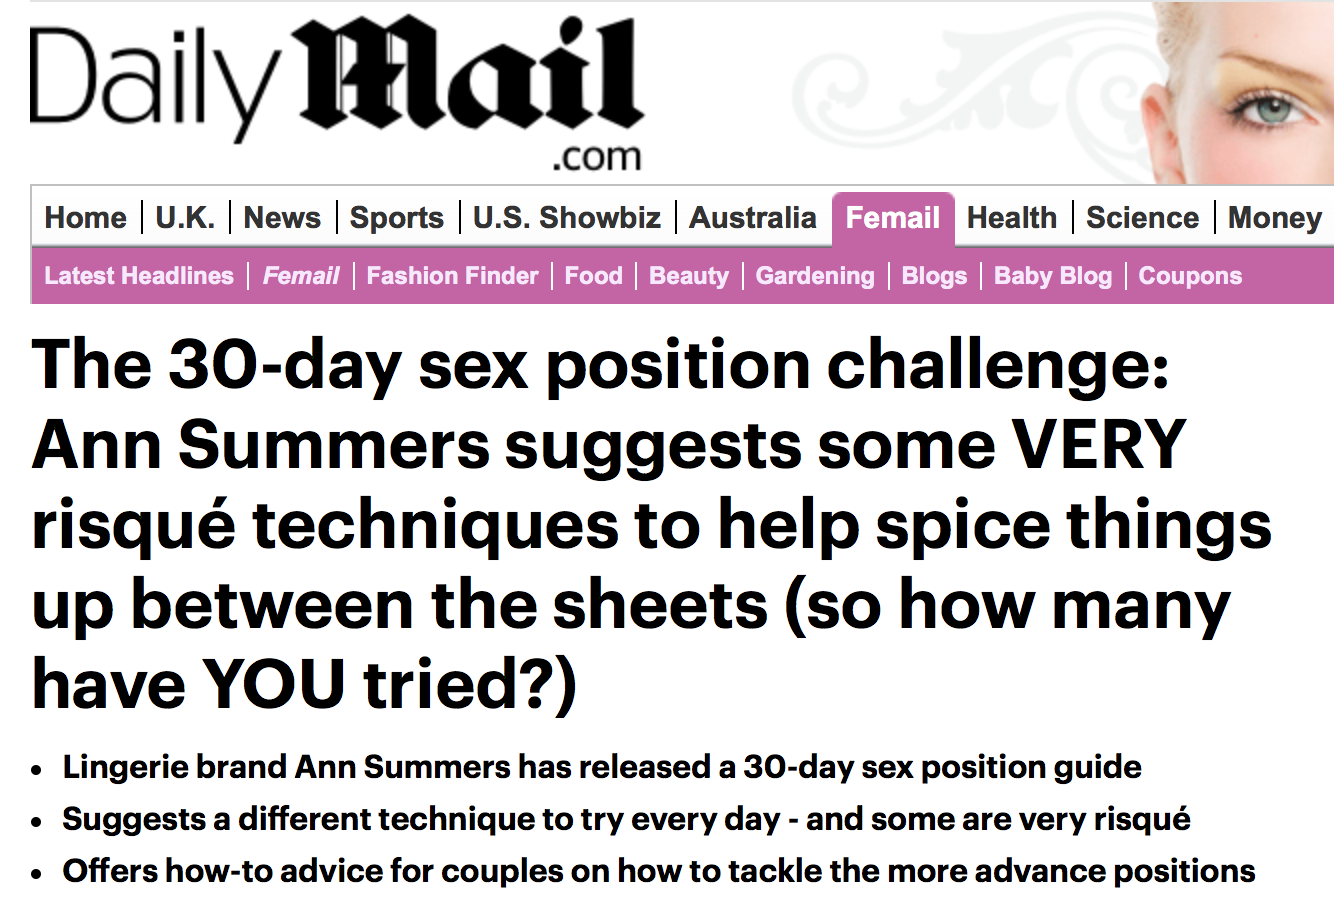 Daily Mail Ann Summers headline